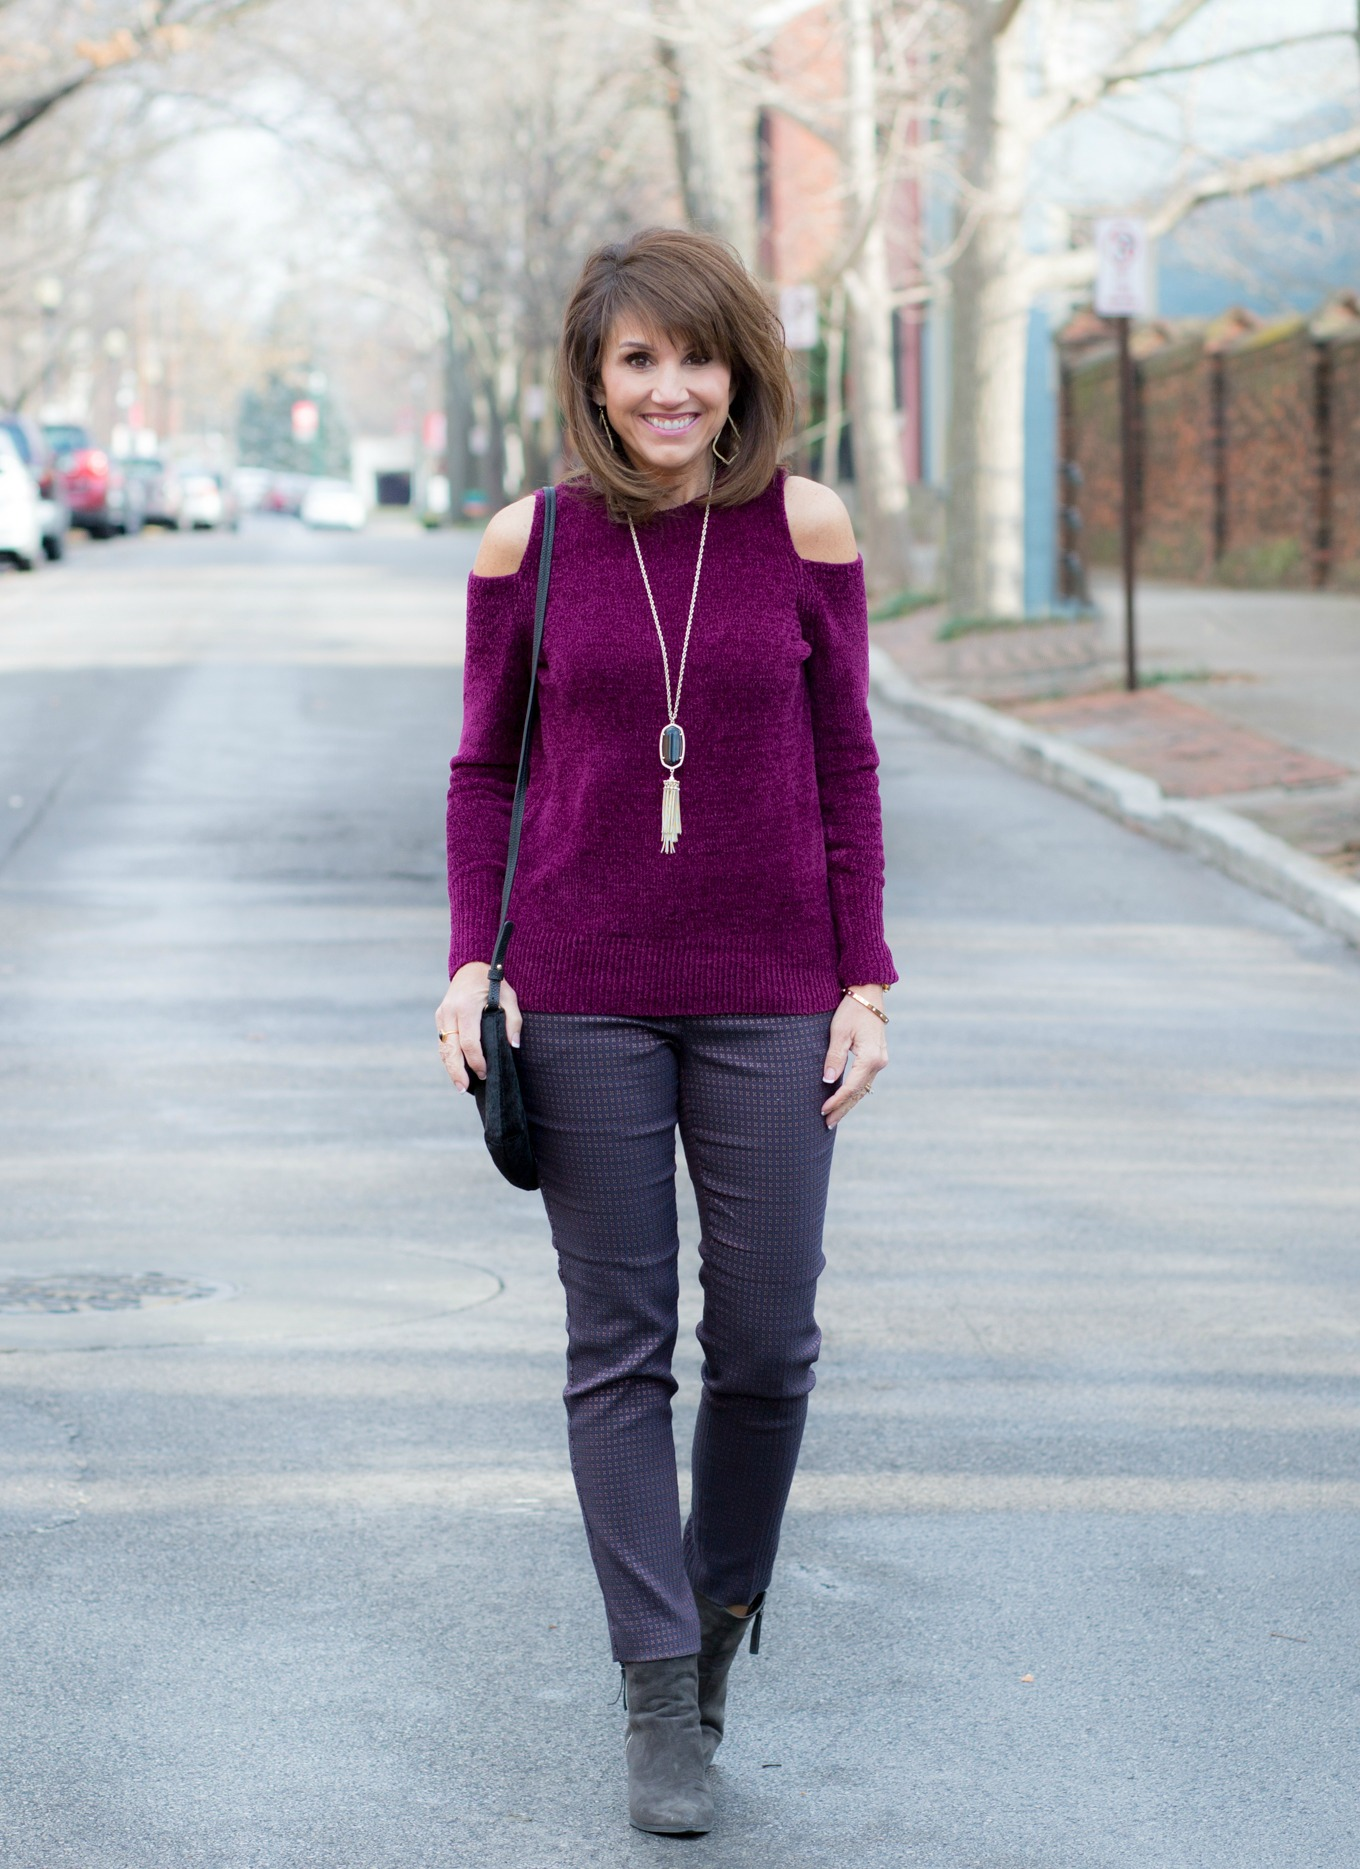 25 Days of Winter Fashion: Winter Workwear Outfit